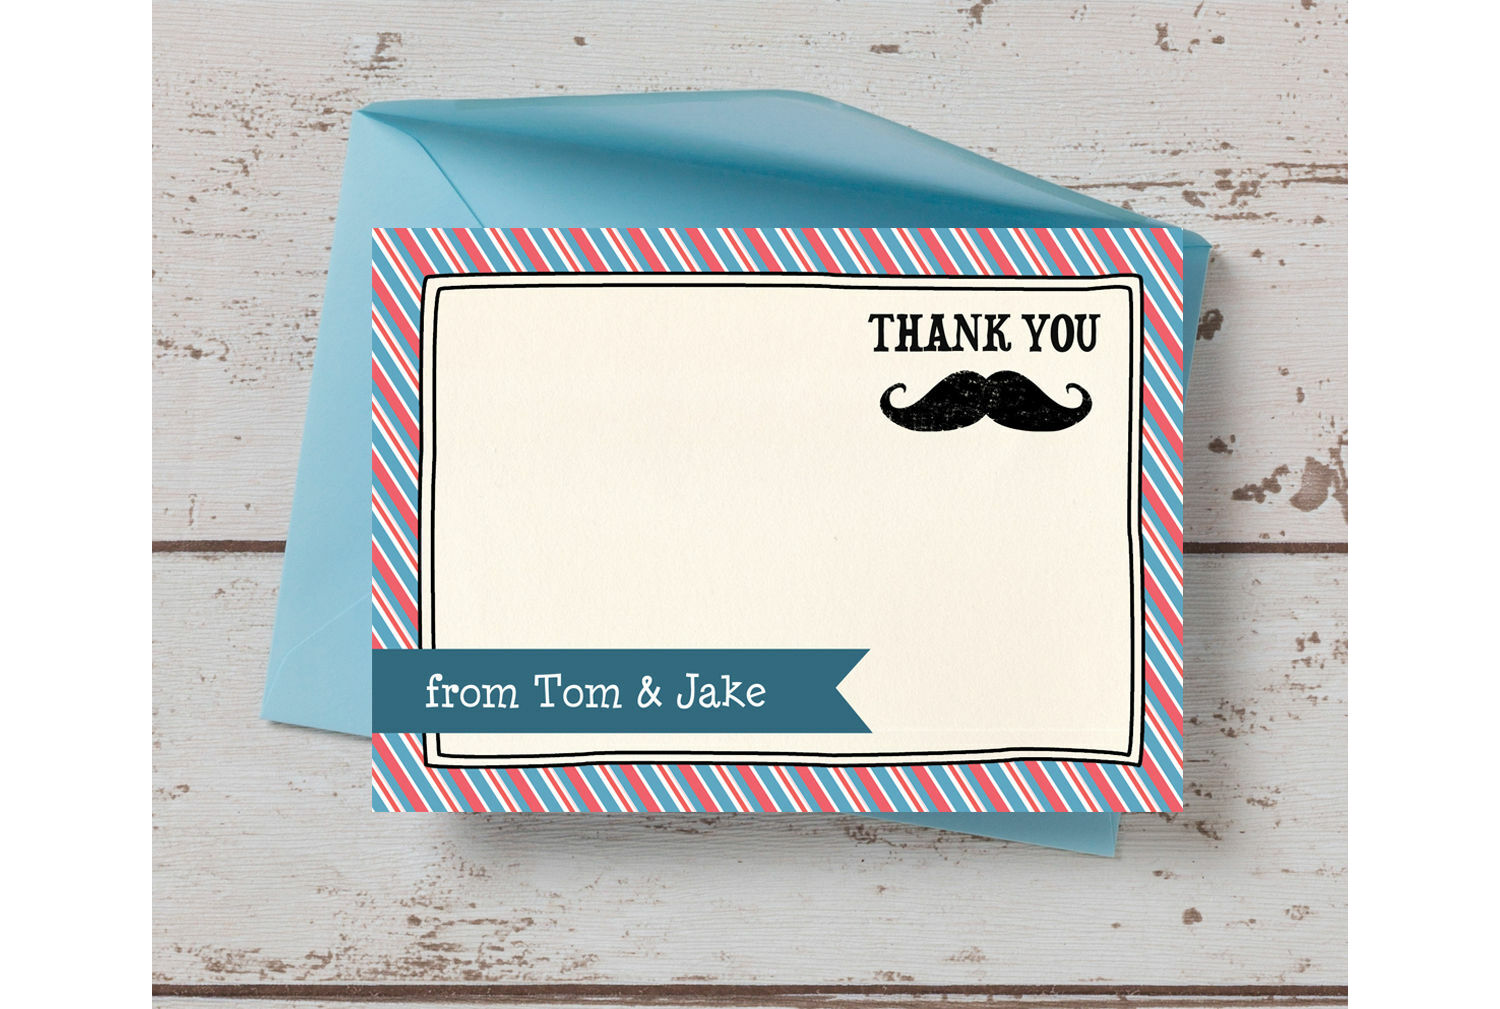 graphic relating to Printable Man Card called Minimal Guy/ Moustache Themed Thank Oneself Card